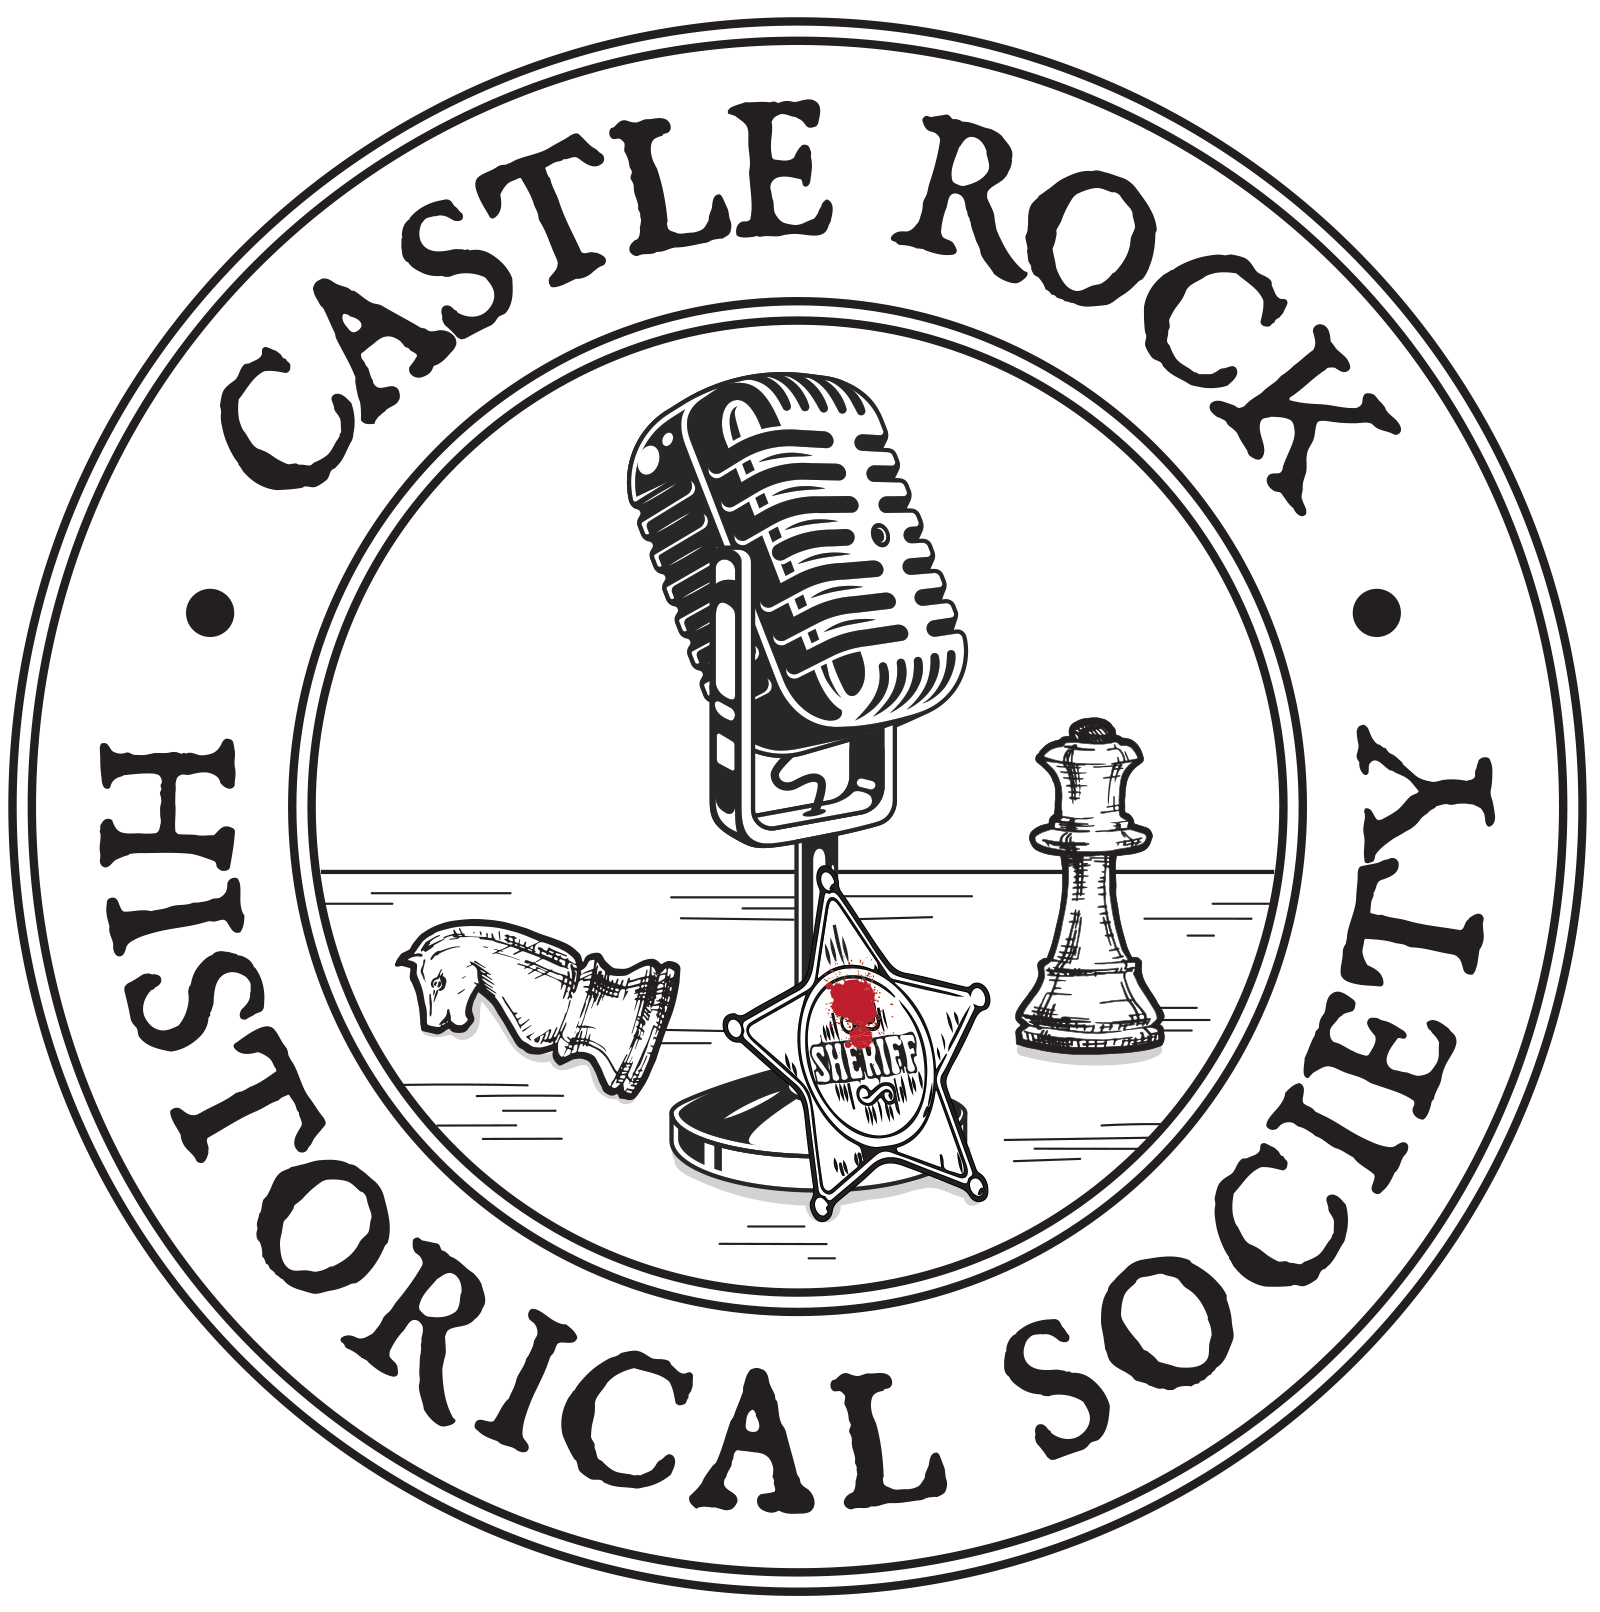 Castle Rock Historical Society